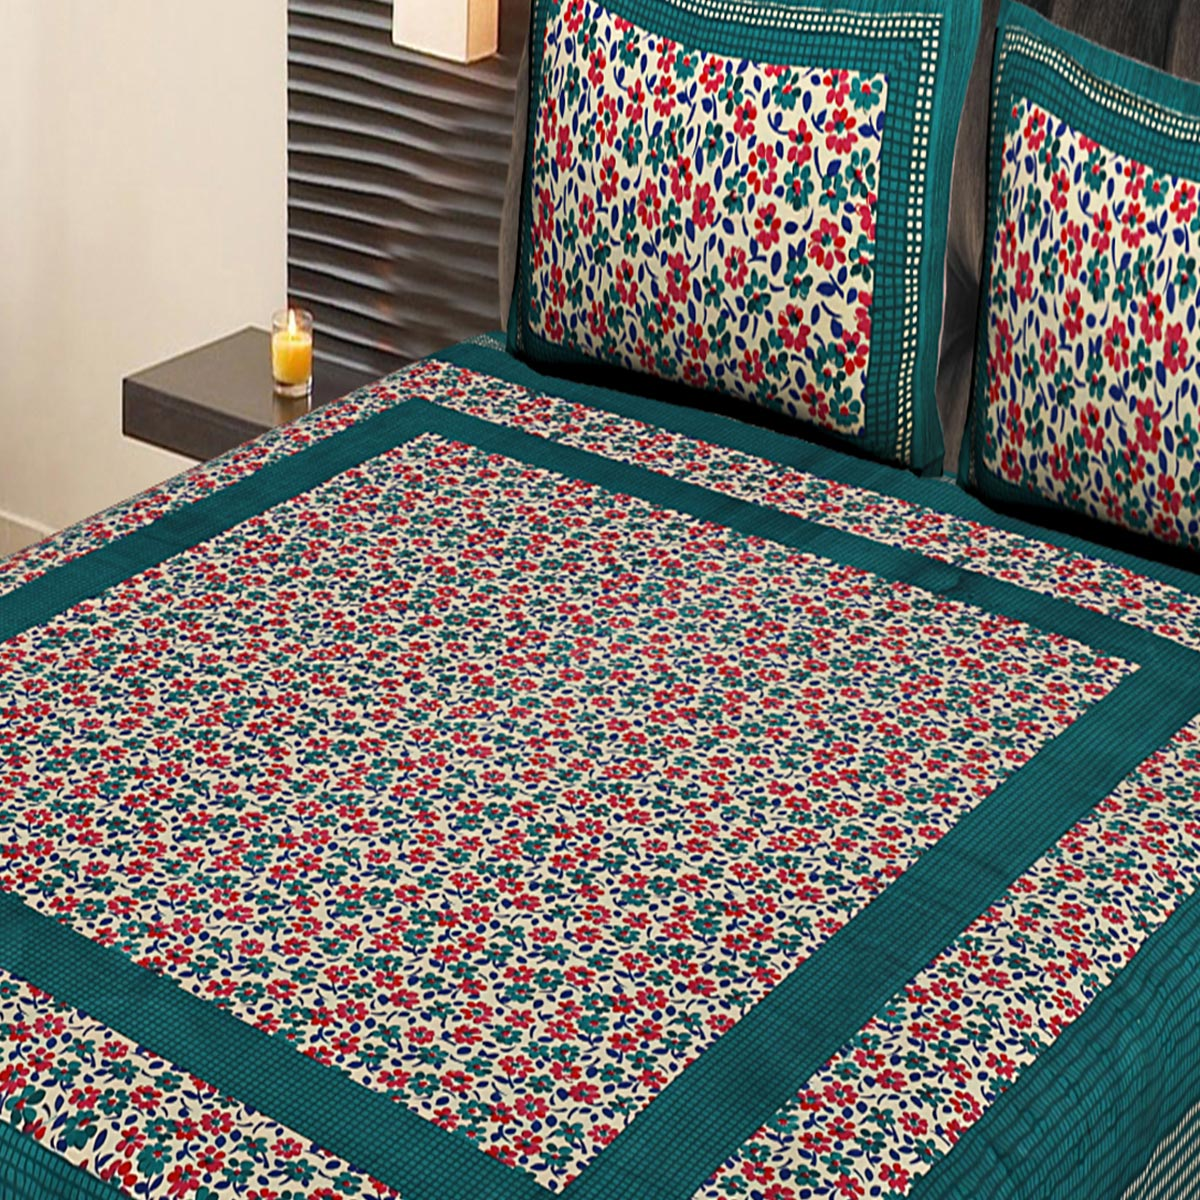 AJ Home - Green Colored Printed Cotton Double Bedsheet With 2 Pillow Cover